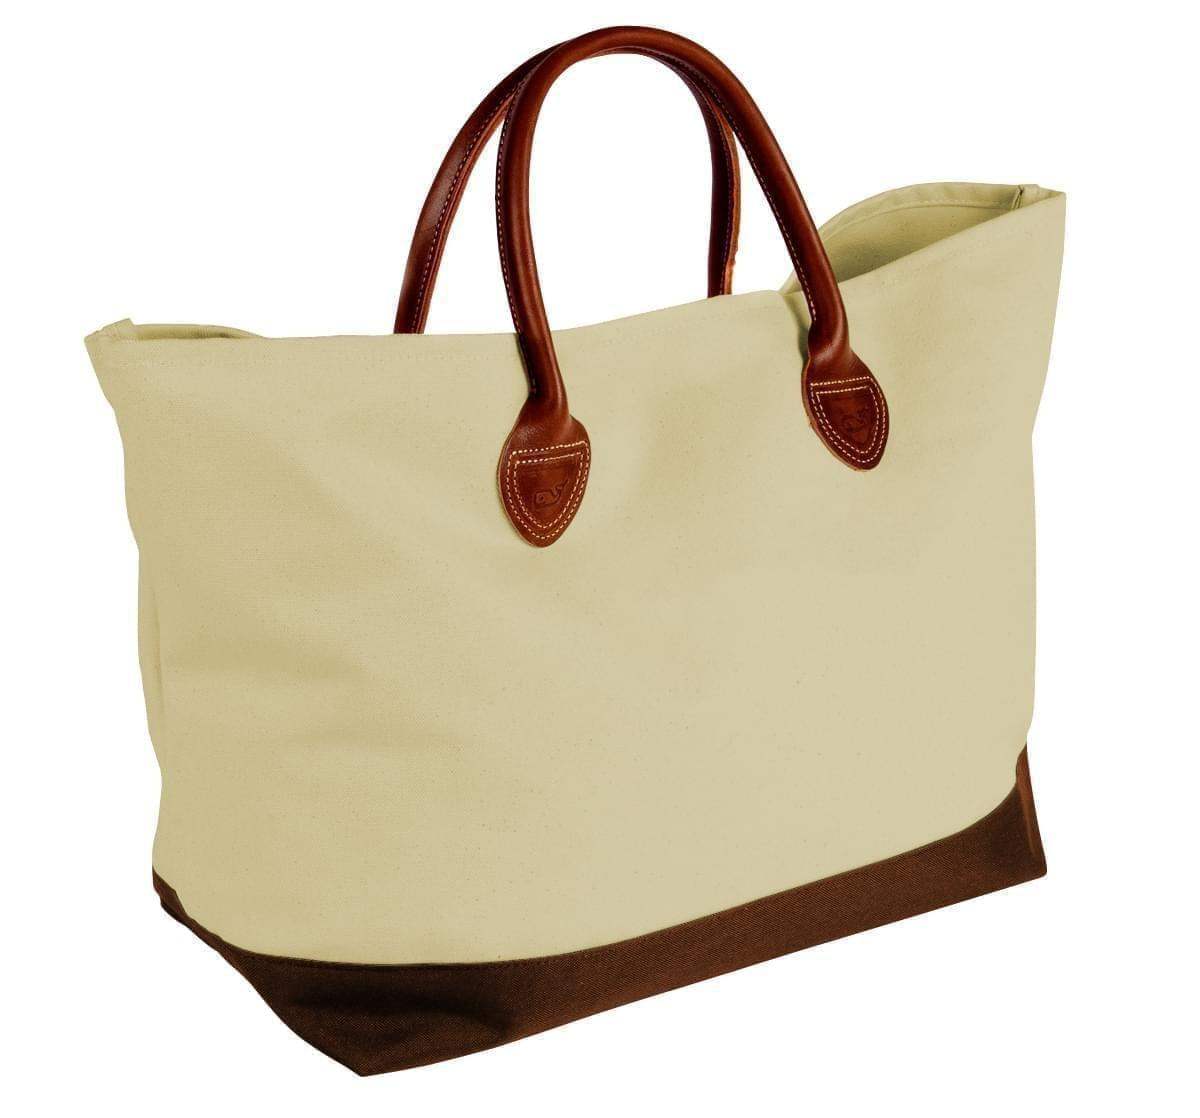 USA Made Canvas Leather Handle Totes, Natural-Brown, 10899-DK9